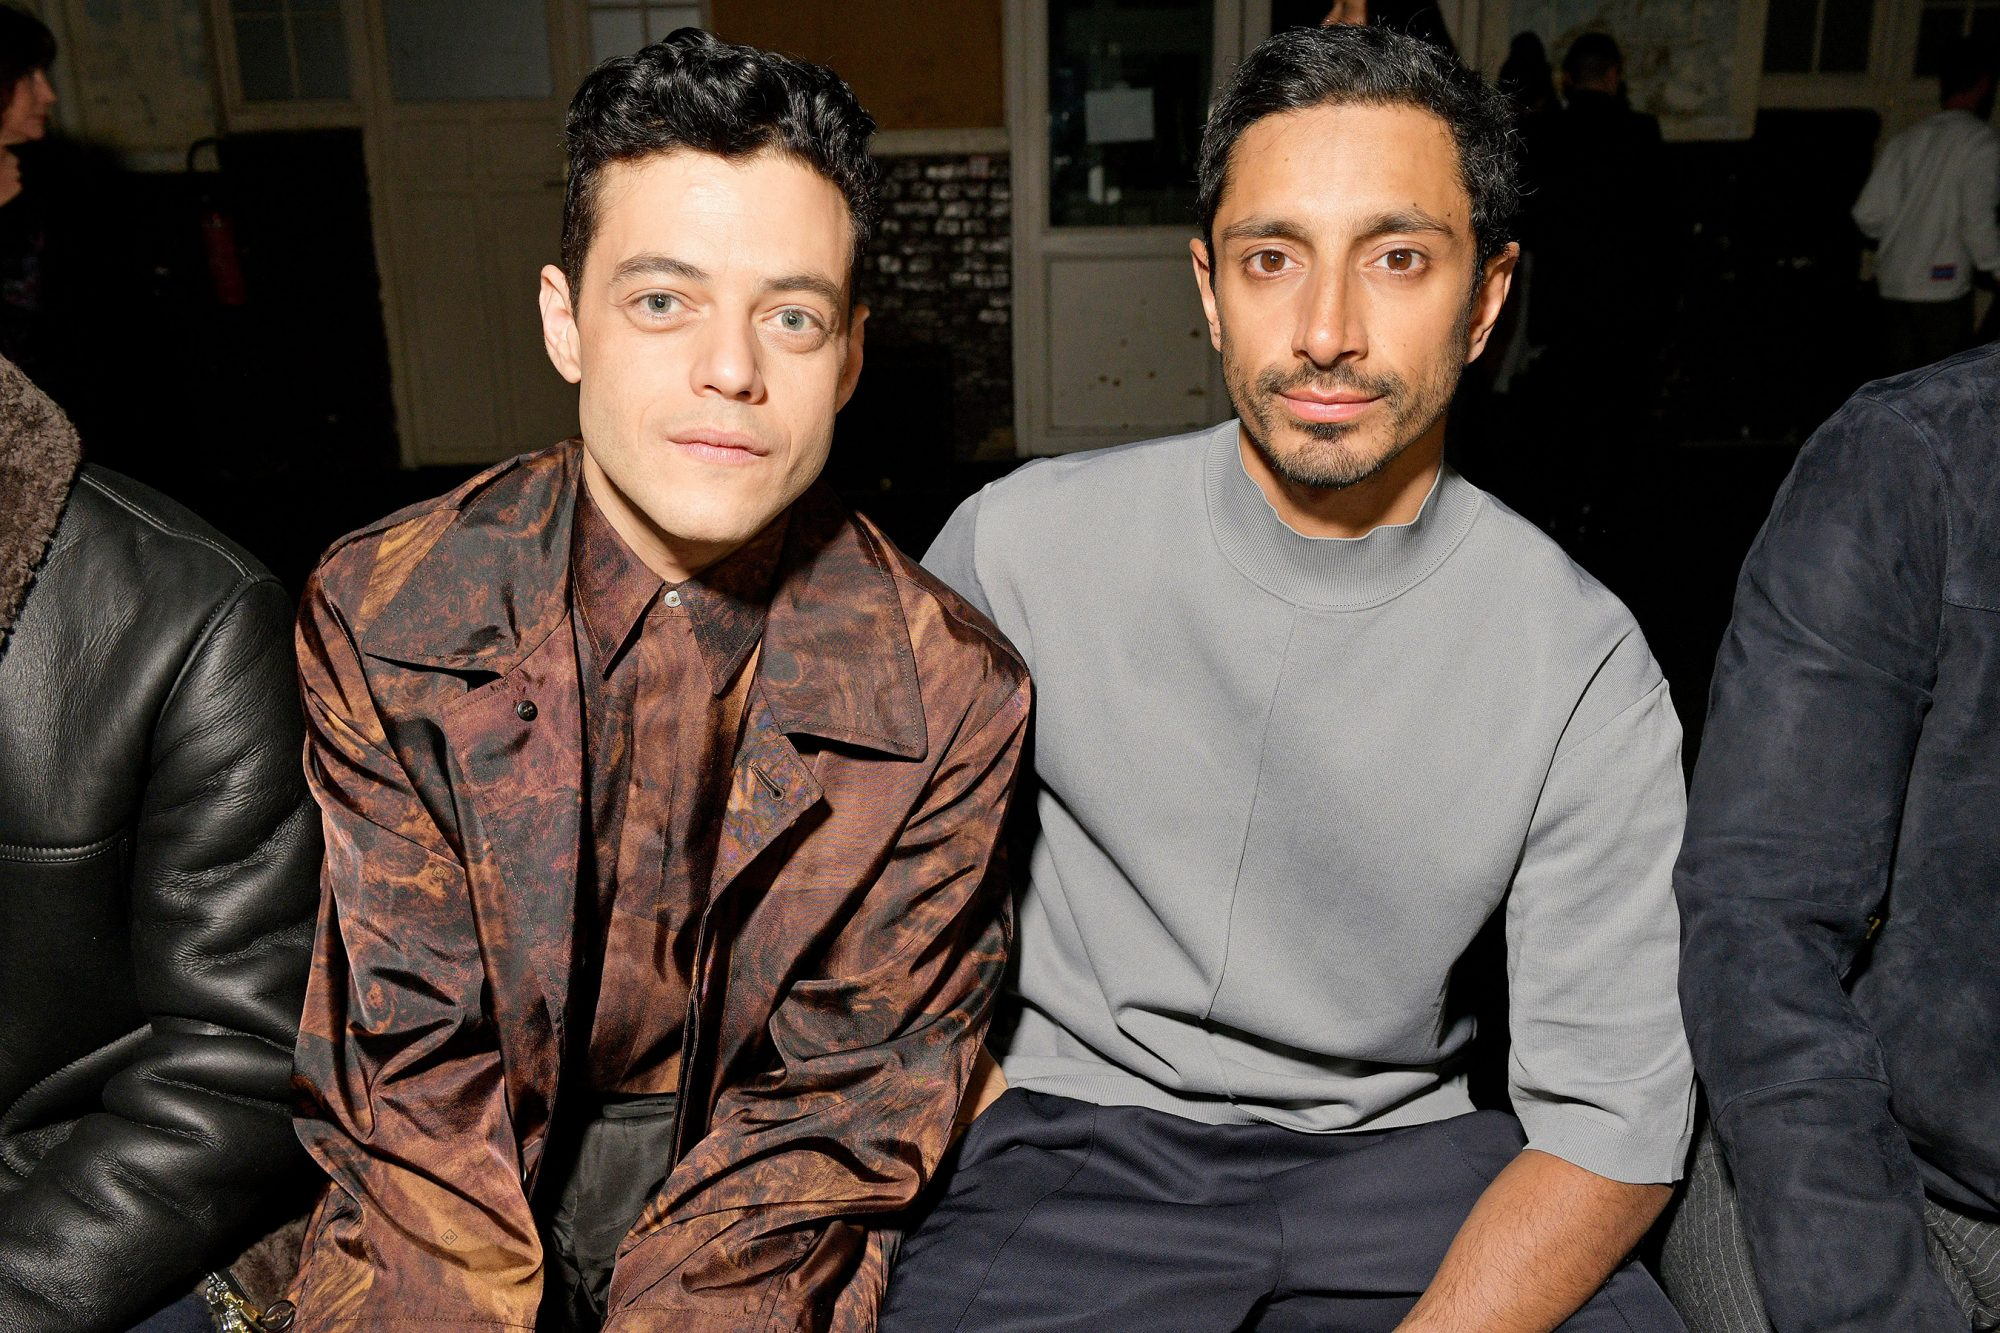 Dunhill show, Front Row, Fall Winter 2019, Paris Fashion Week Men's, France - 20 Jan 2019